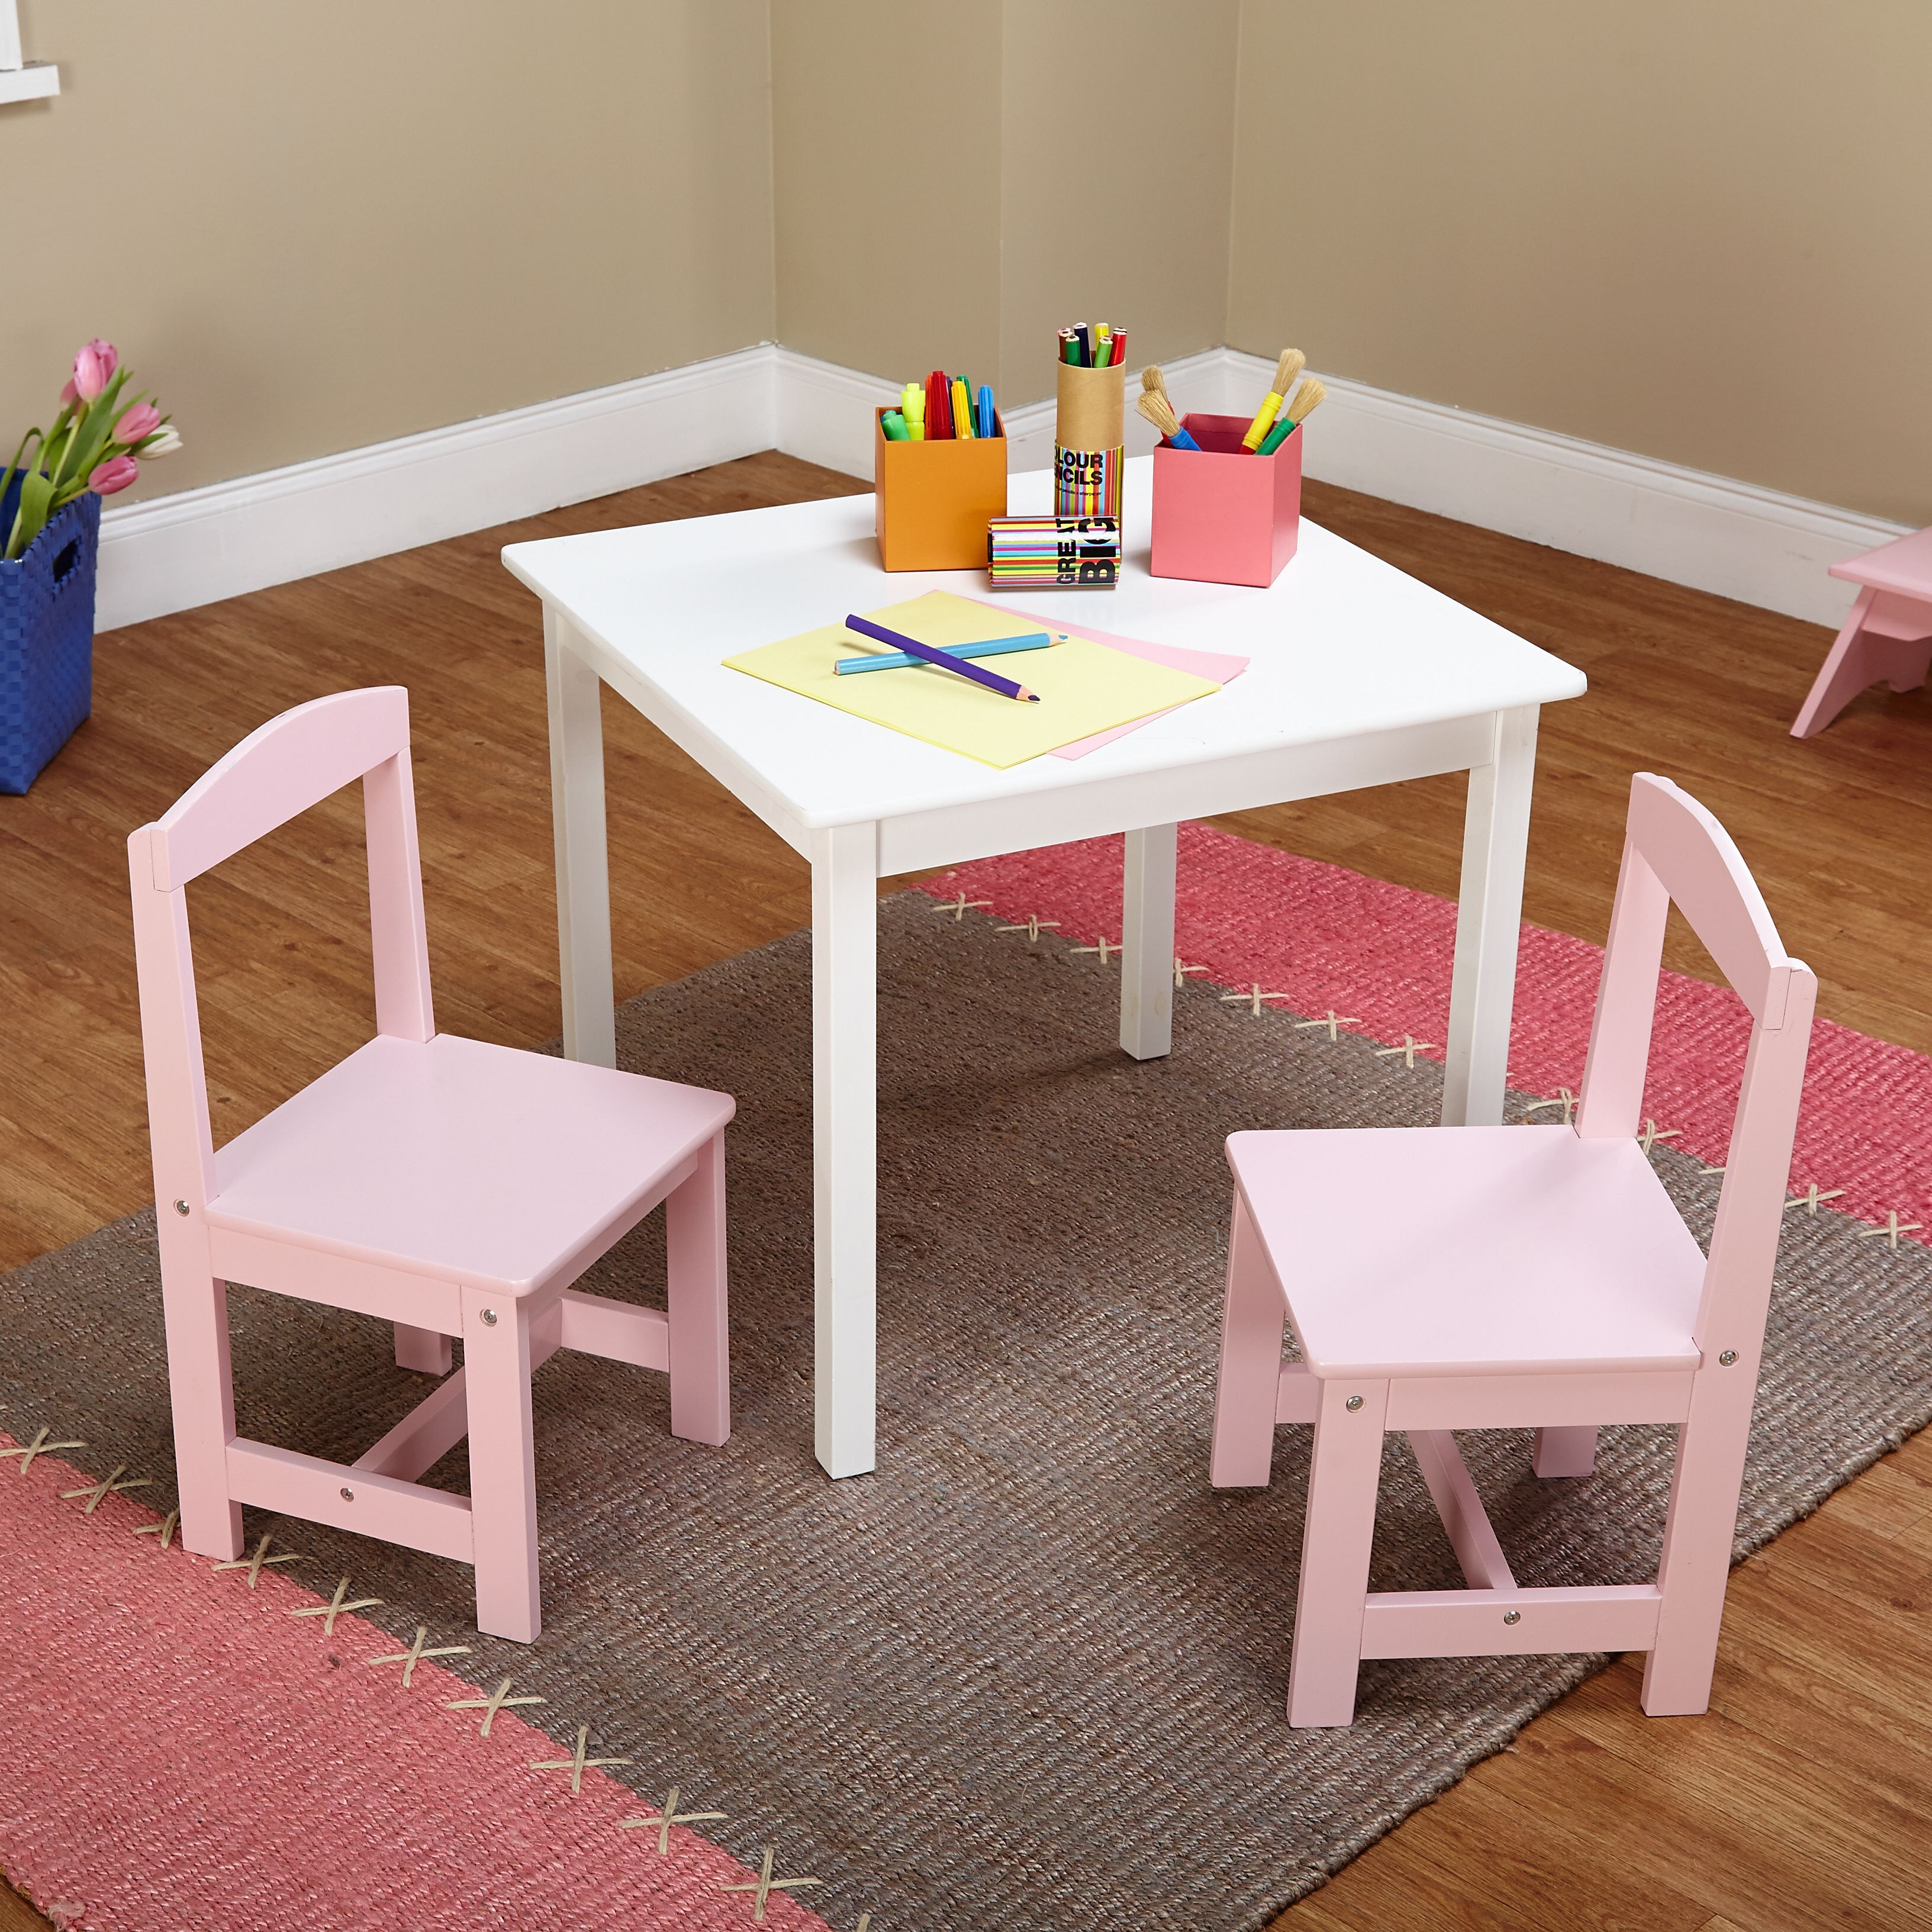 Admirable Simple Living Hayden Kids Pink White 3 Piece Table And Alphanode Cool Chair Designs And Ideas Alphanodeonline